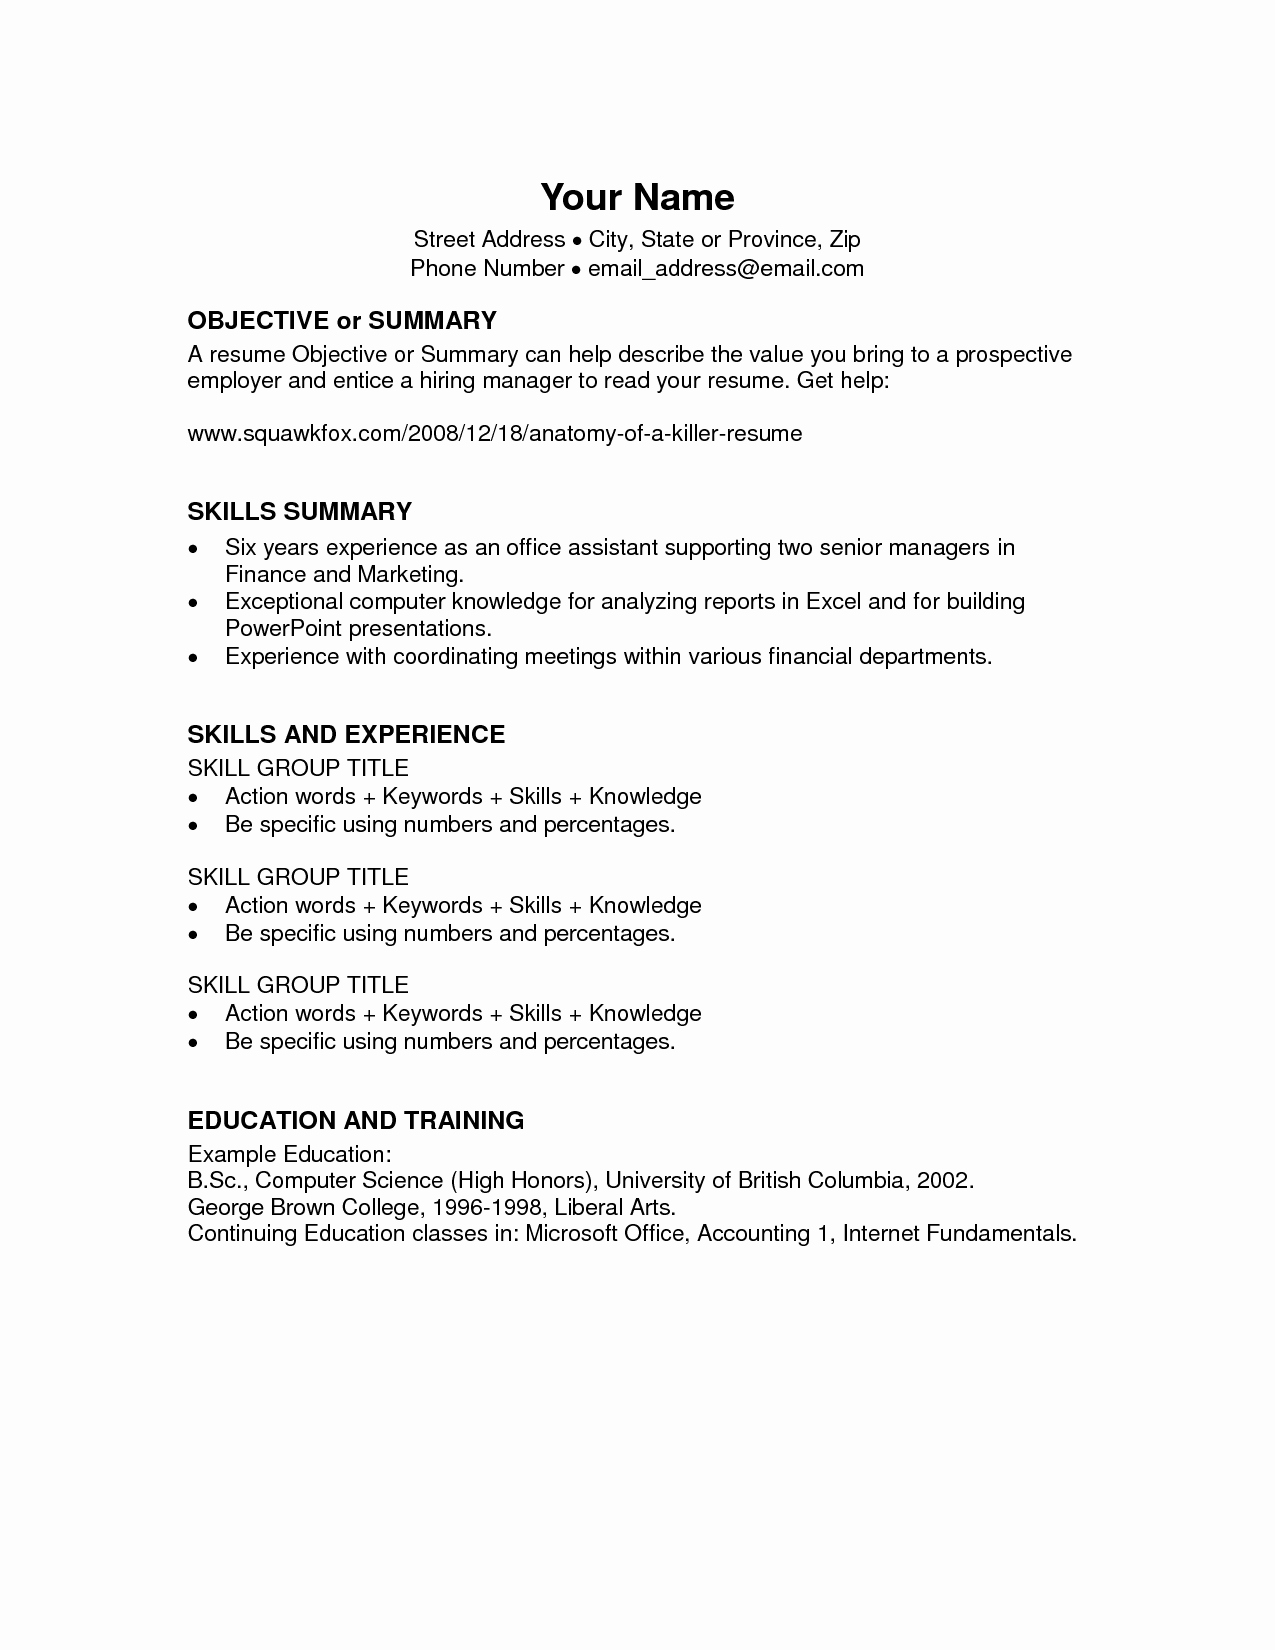 Resume Template Microsoft Word 2003 New Microsoft Fice Resume Templates